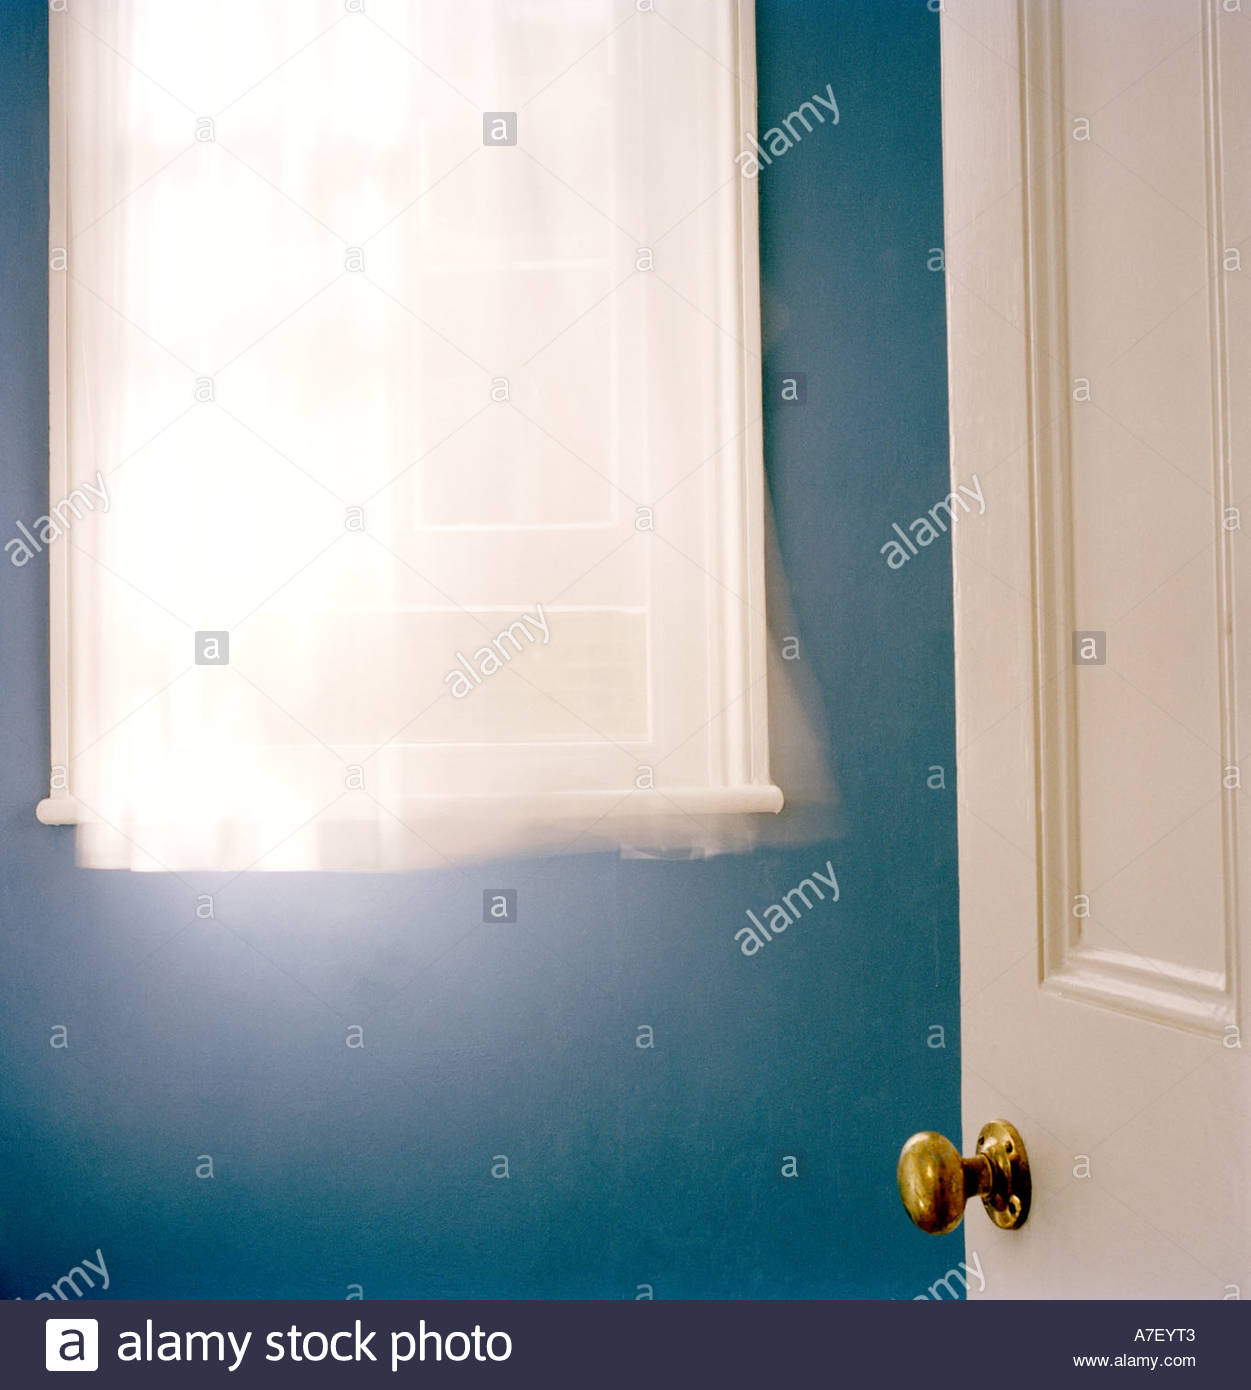 Curtain blowing in the window with open window and open door - Stock Image